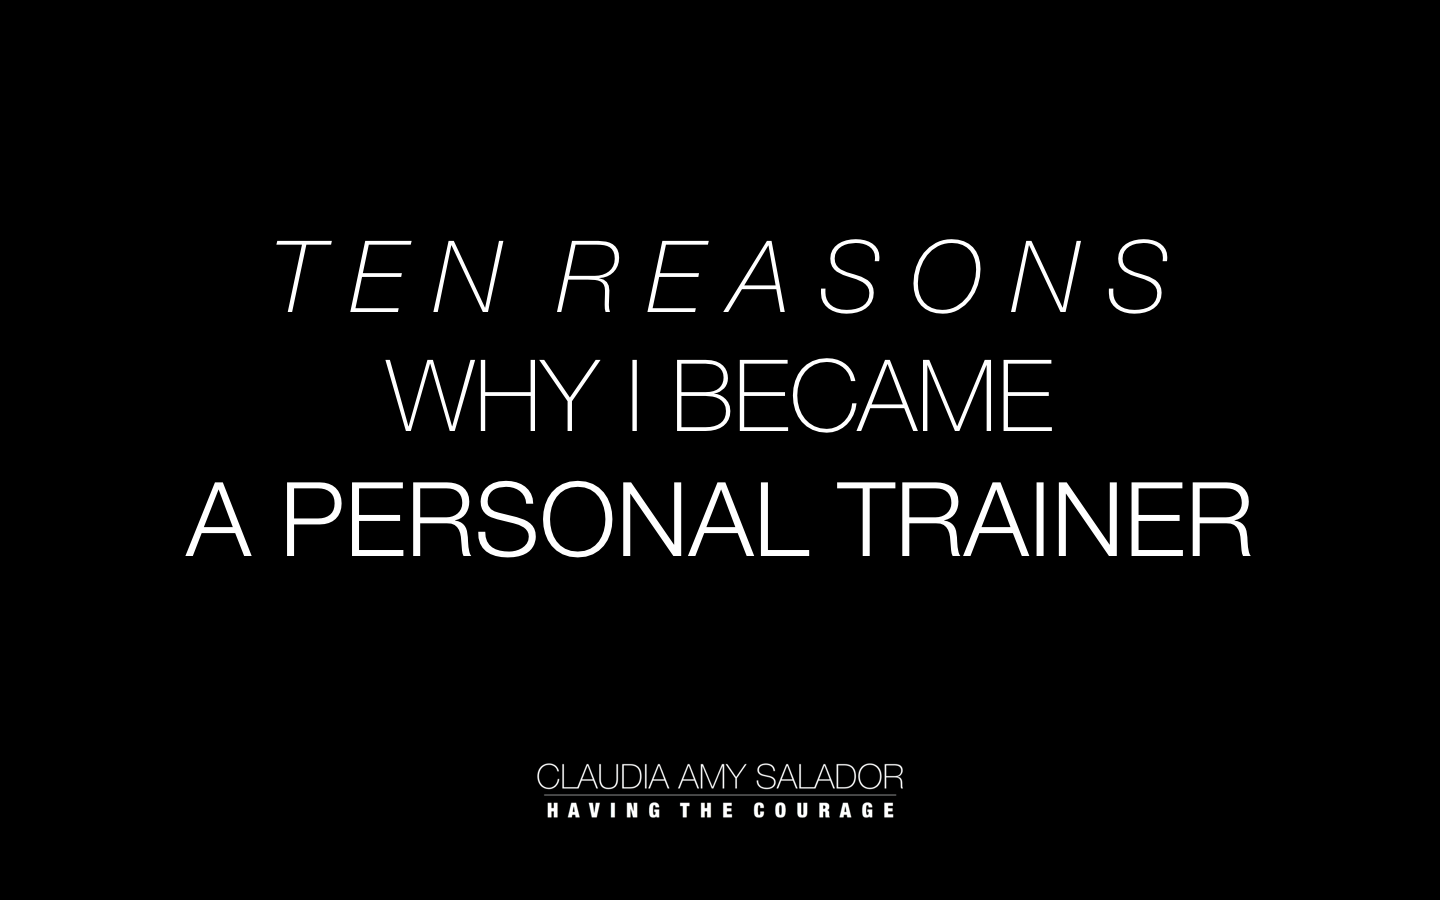 11/09/2018    'Ten Reasons Why I Became A Personal Trainer'